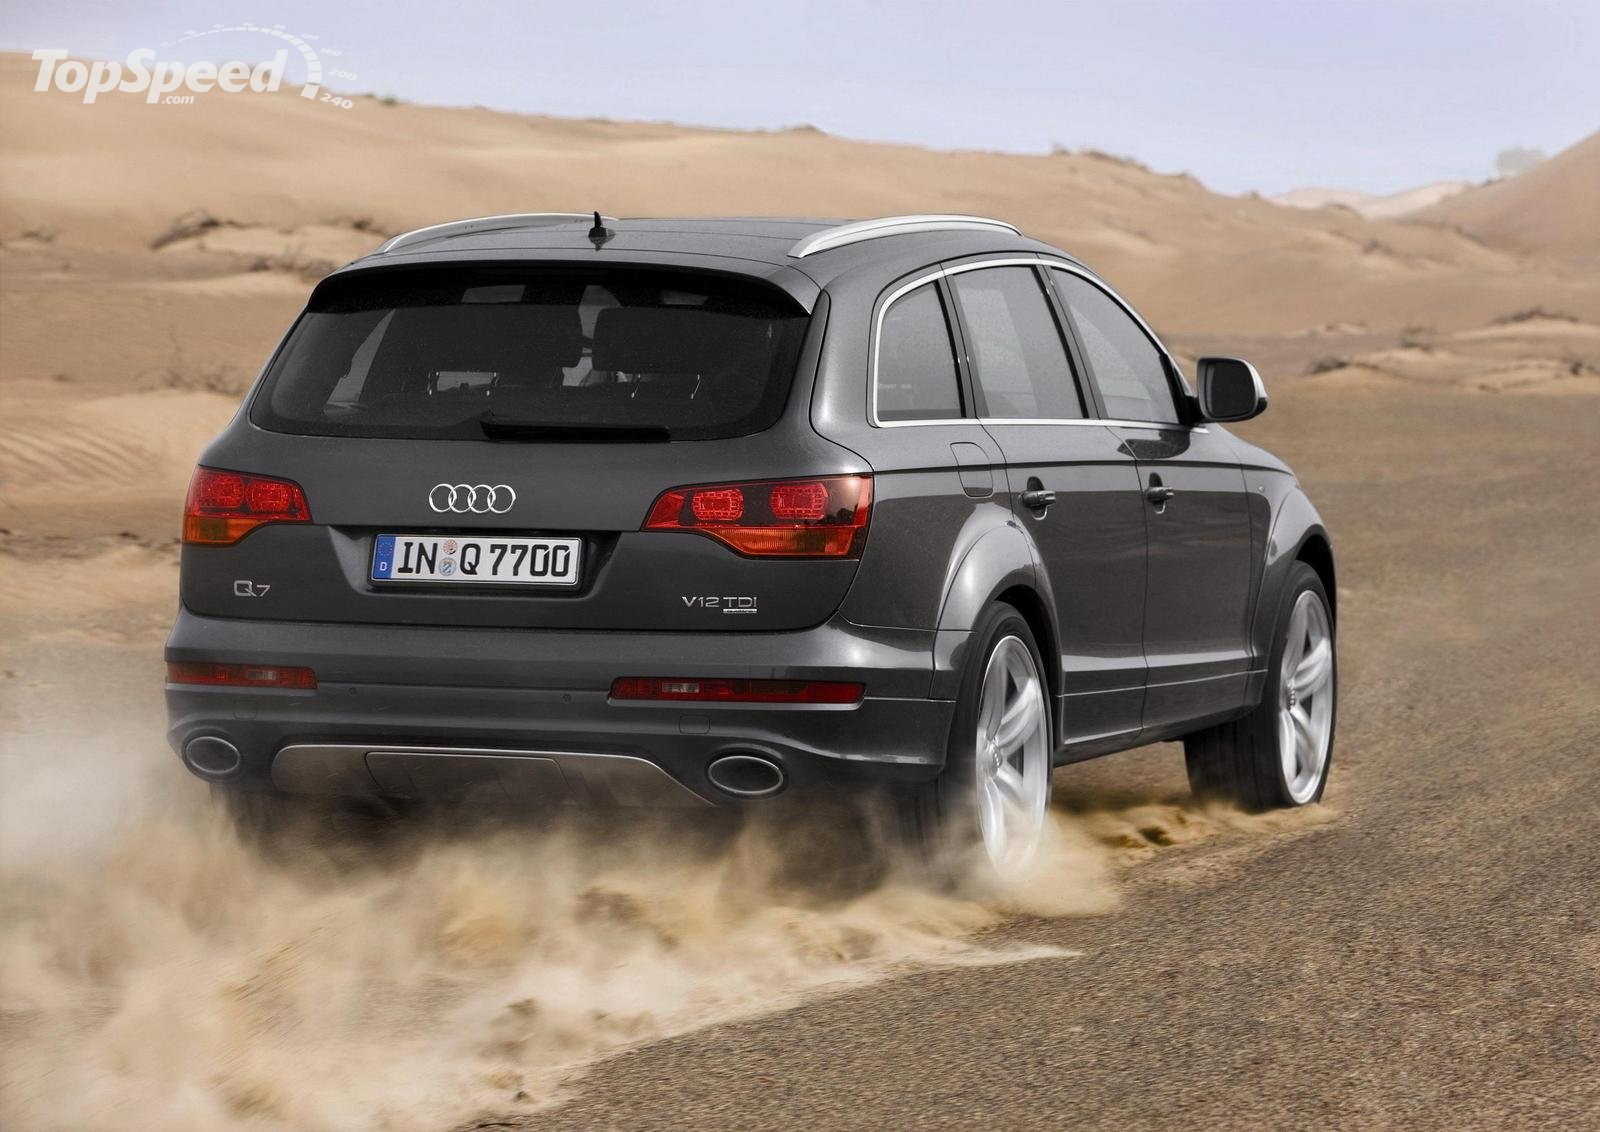 audi q7 6 0 tdi quattro photos and comments. Black Bedroom Furniture Sets. Home Design Ideas